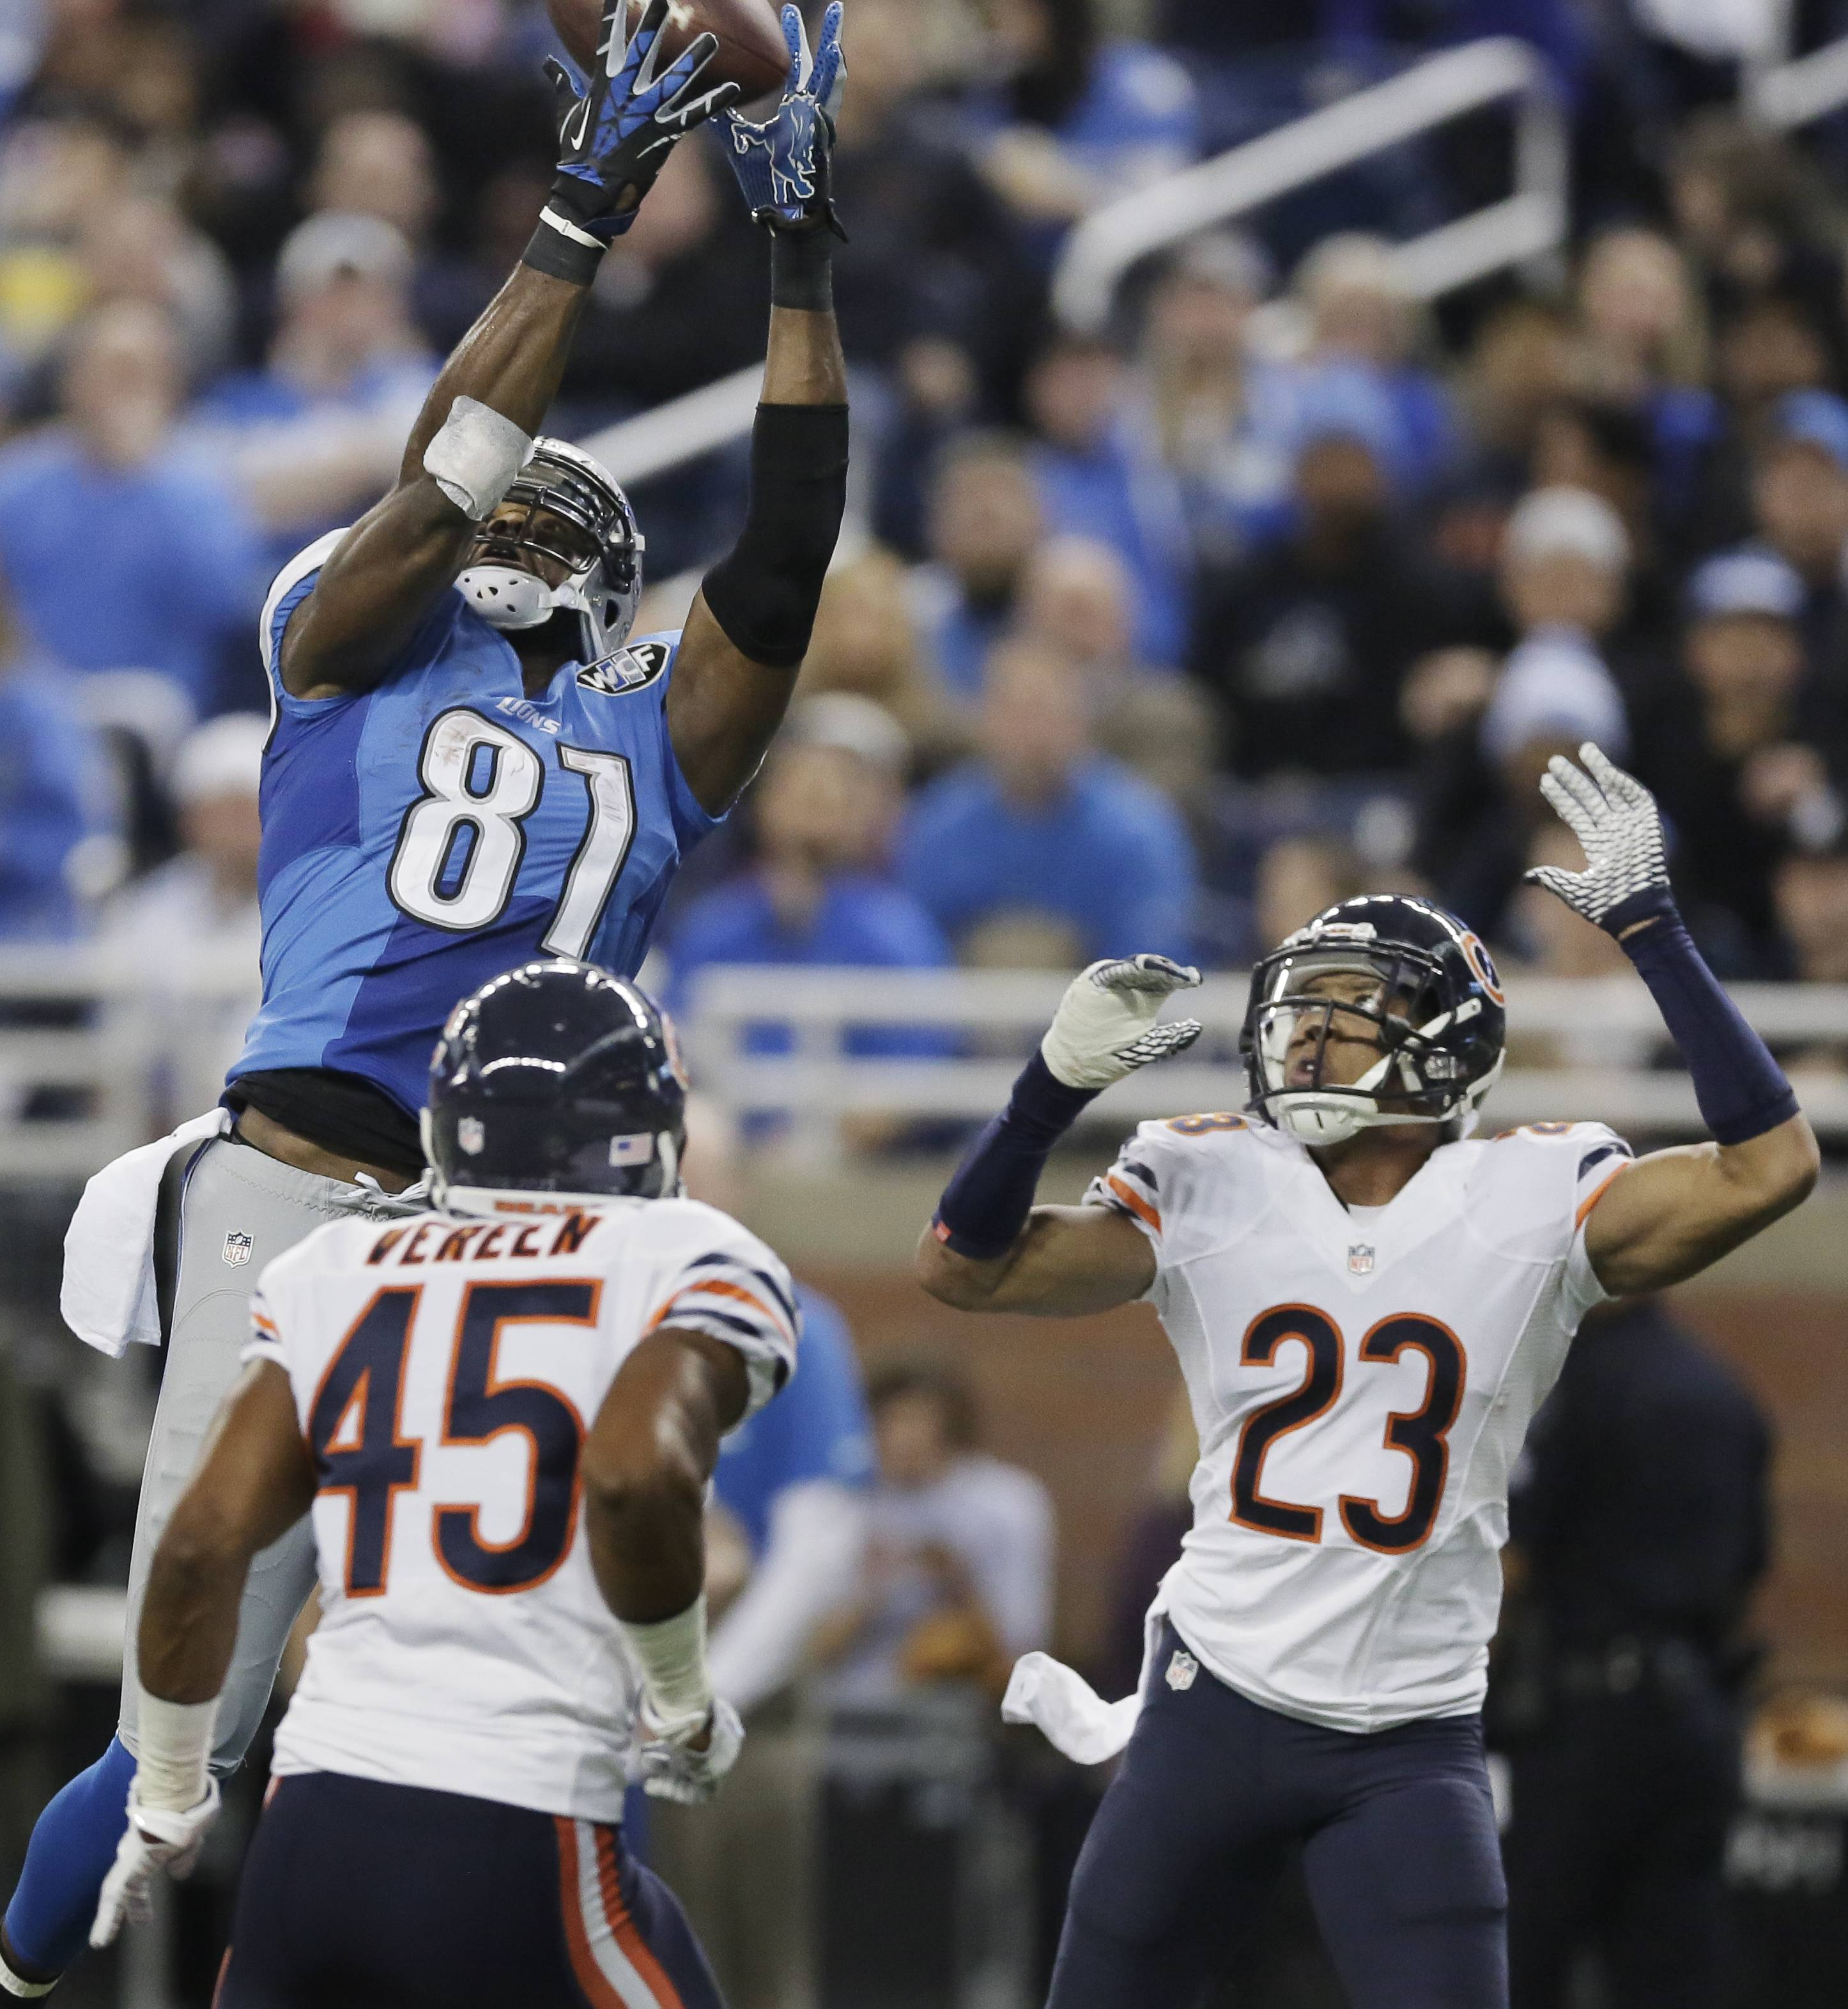 Lions wide receiver Calvin Johnson (81), defended by Bears cornerback Kyle Fuller (23), makes a 25-yard reception for a touchdown during Thursday's first half in Detroit.